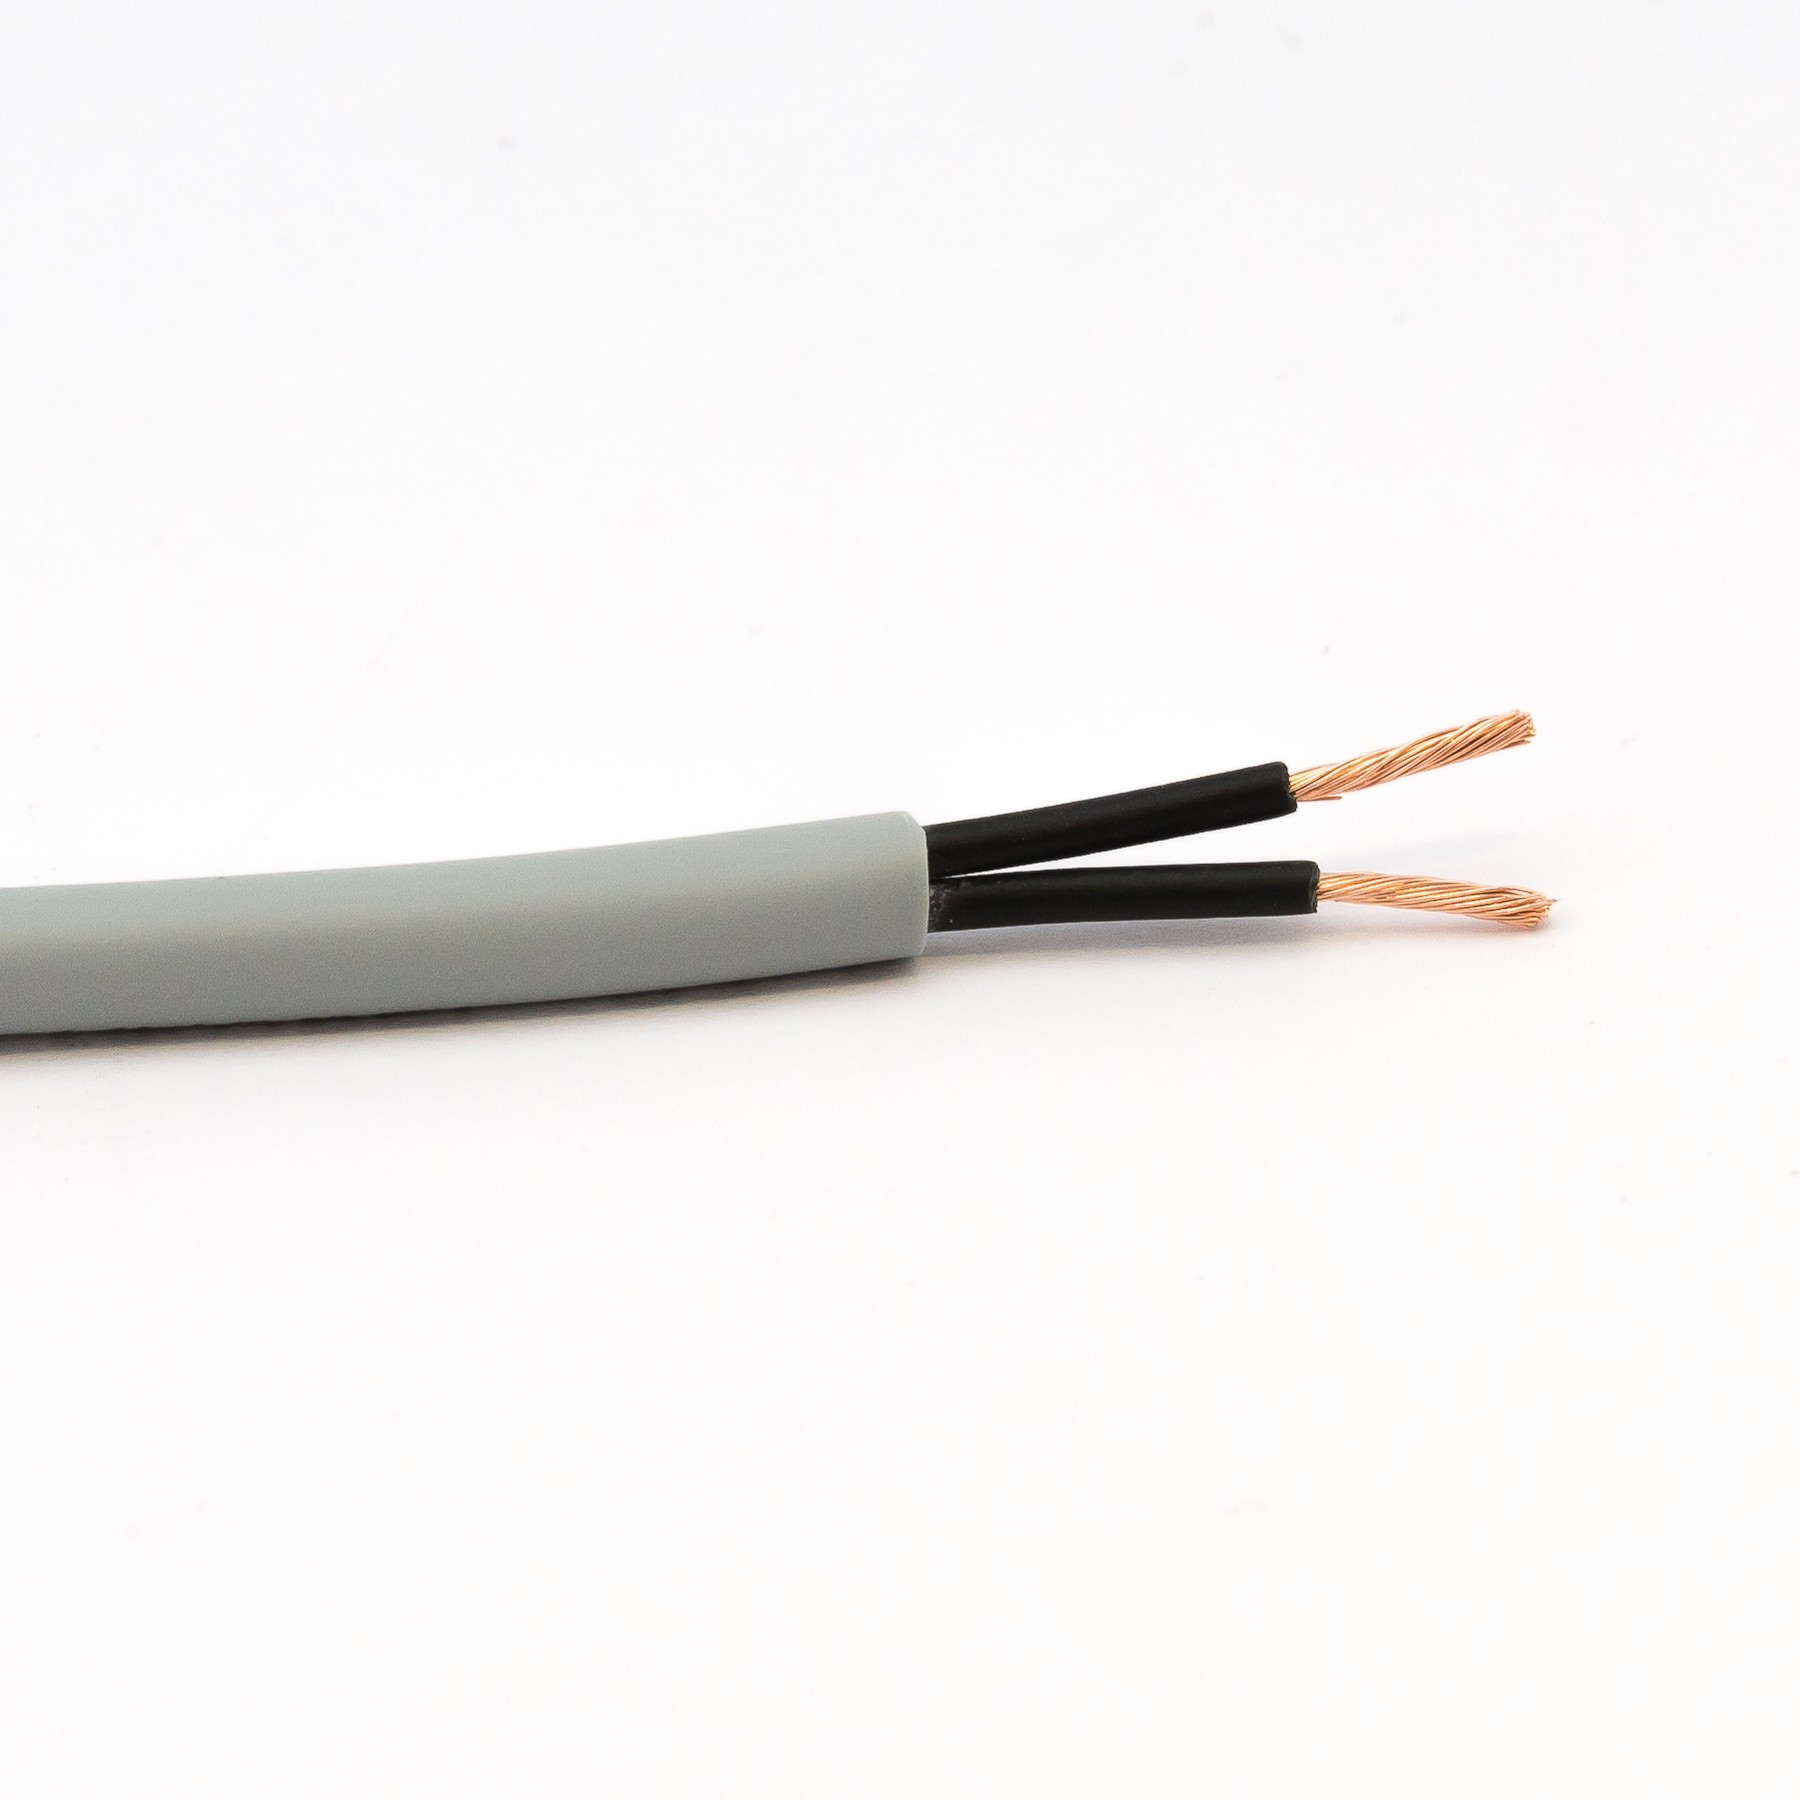 Flexible 2-wire 1mm2 cable